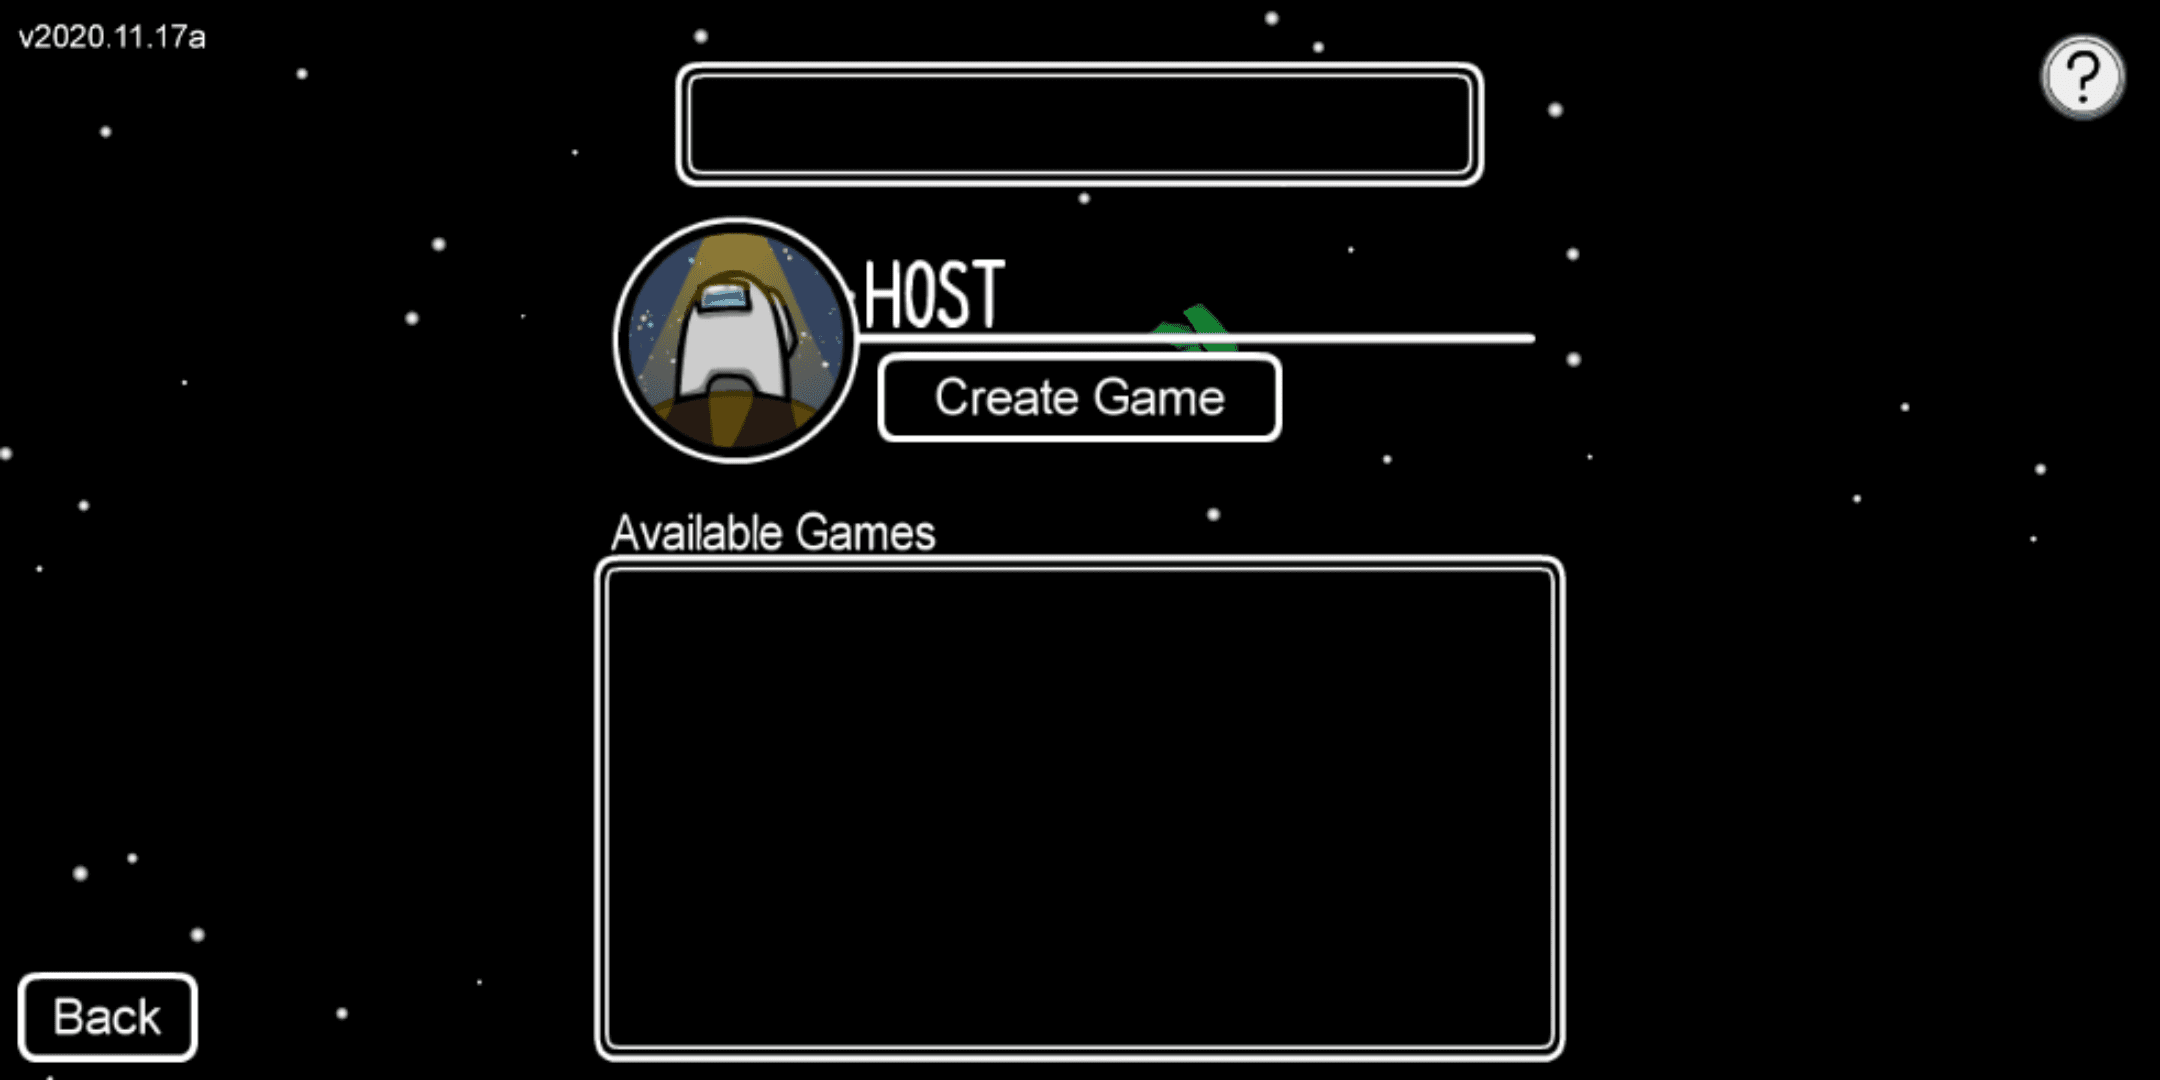 Starting an Among Us game with a blank name.